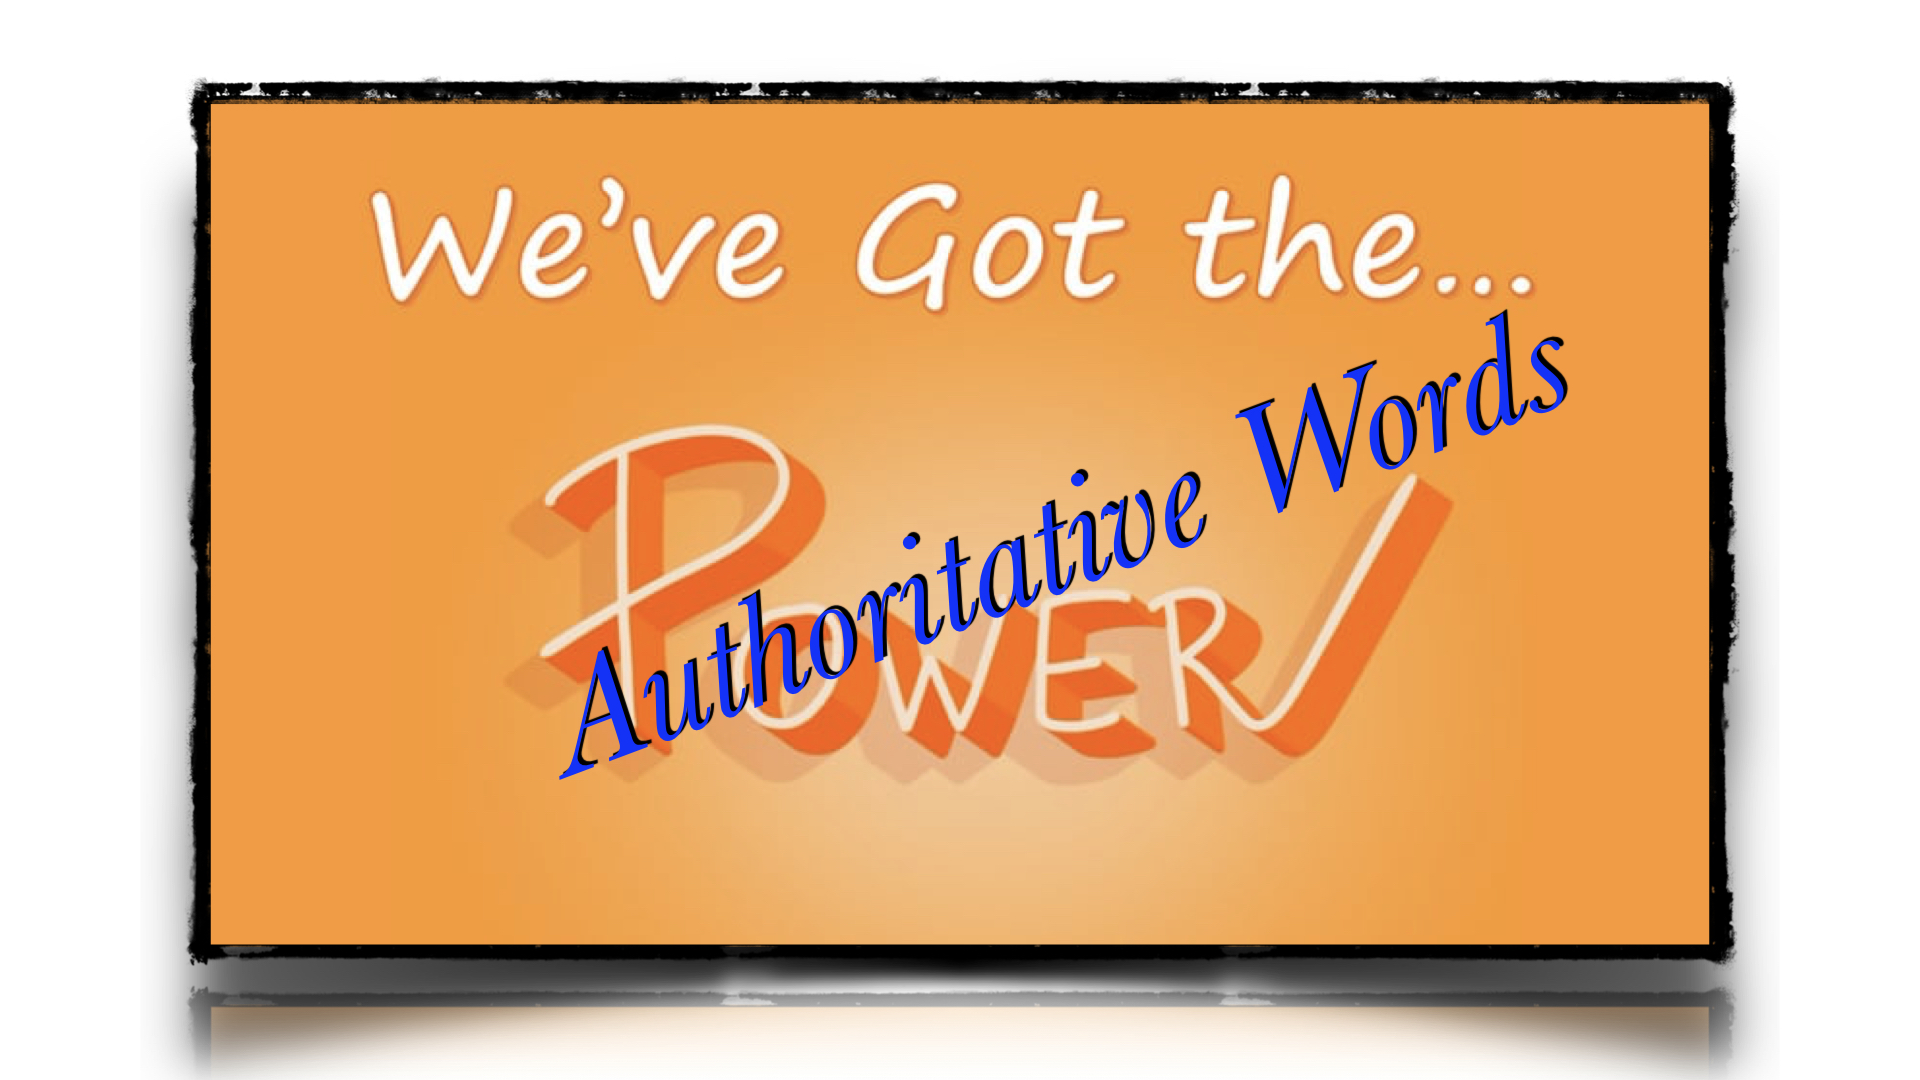 Authoritative Words 3272019 50659 PM